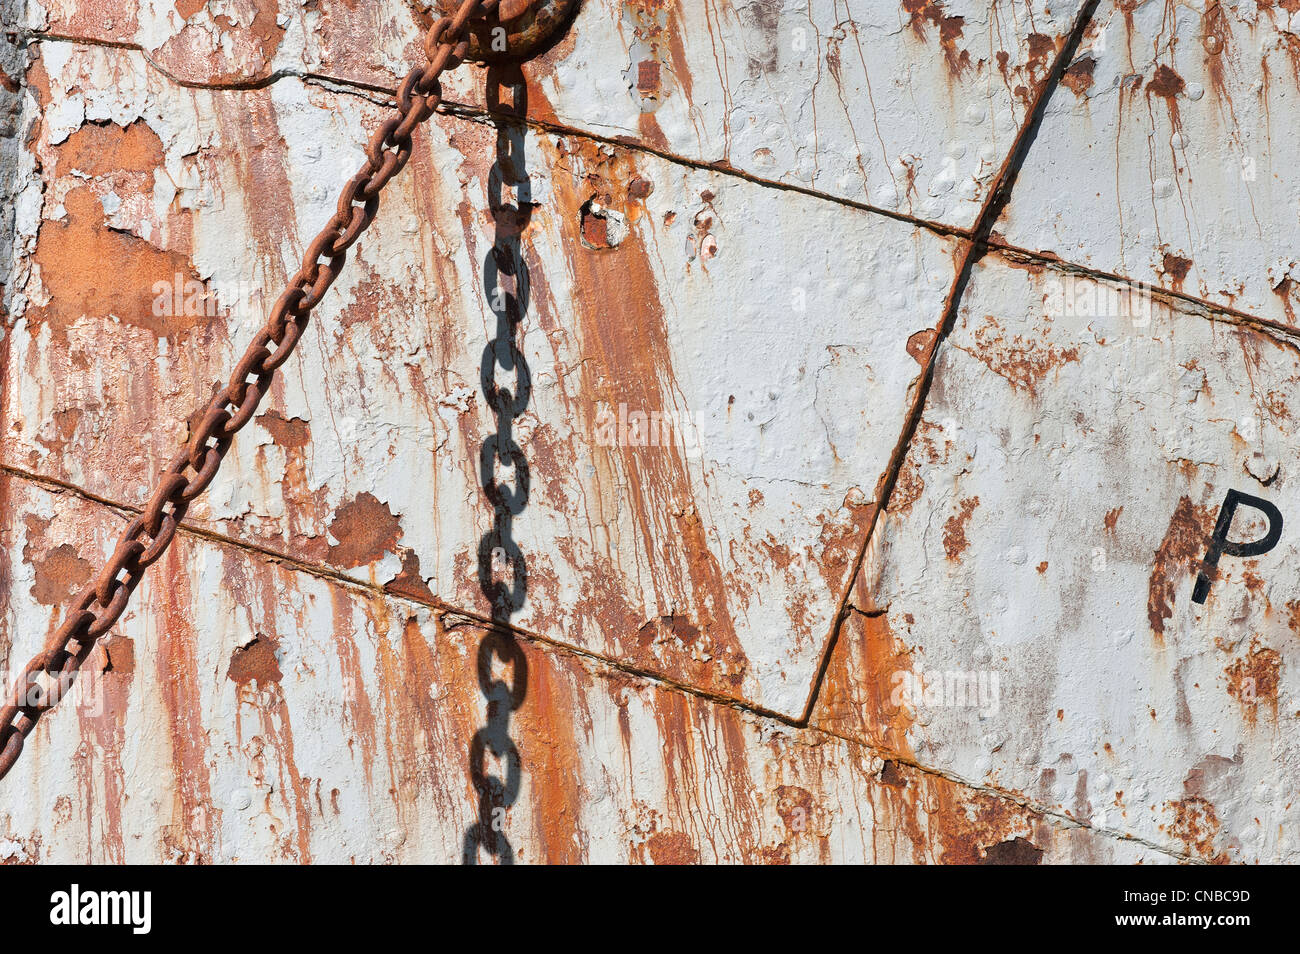 Detail of the Petrel whaling ship anchor chain, Former Grytviken Whaling Station, South Georgia - Stock Image